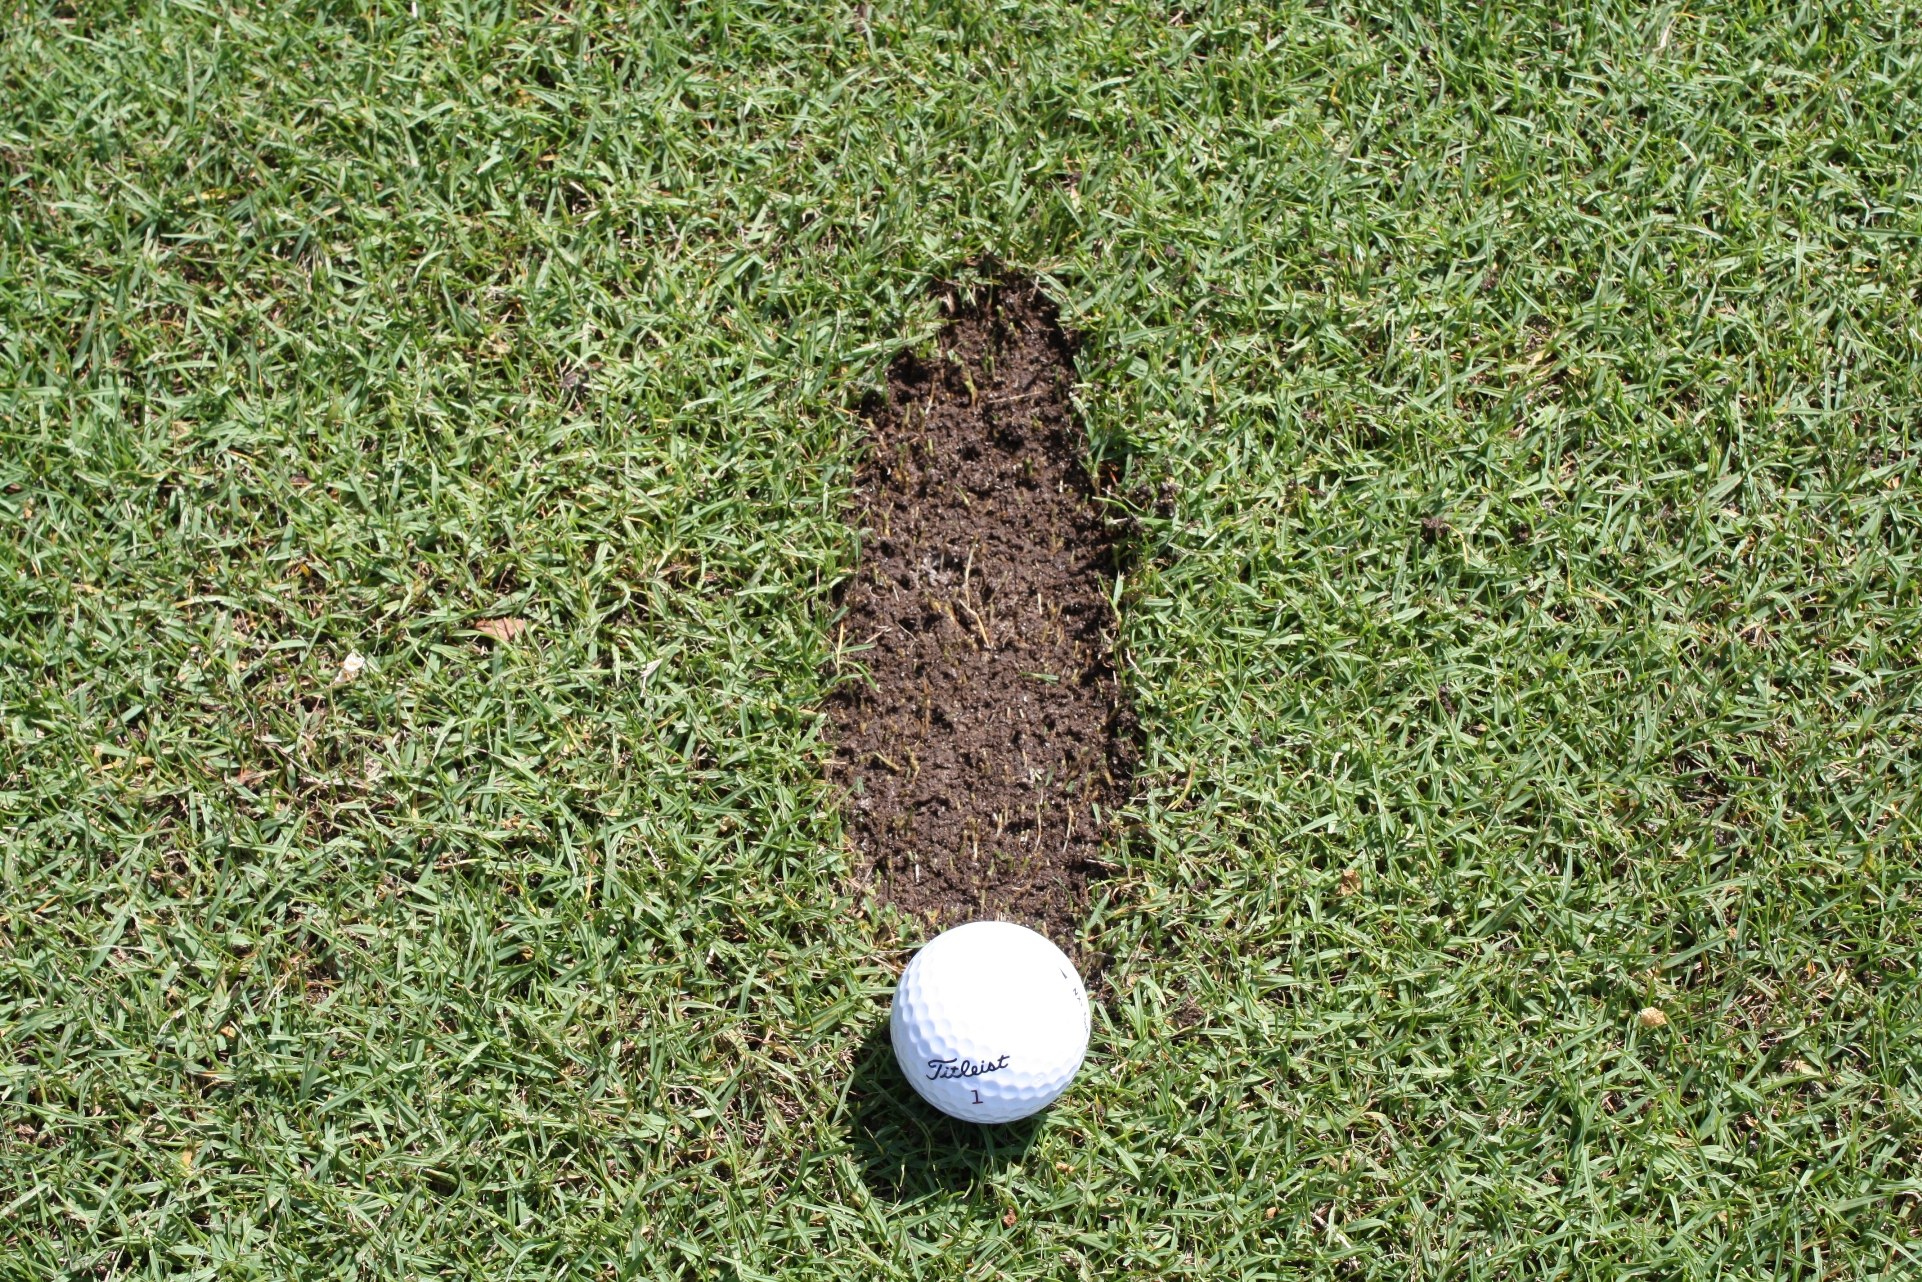 A Correctly Positioned Divot